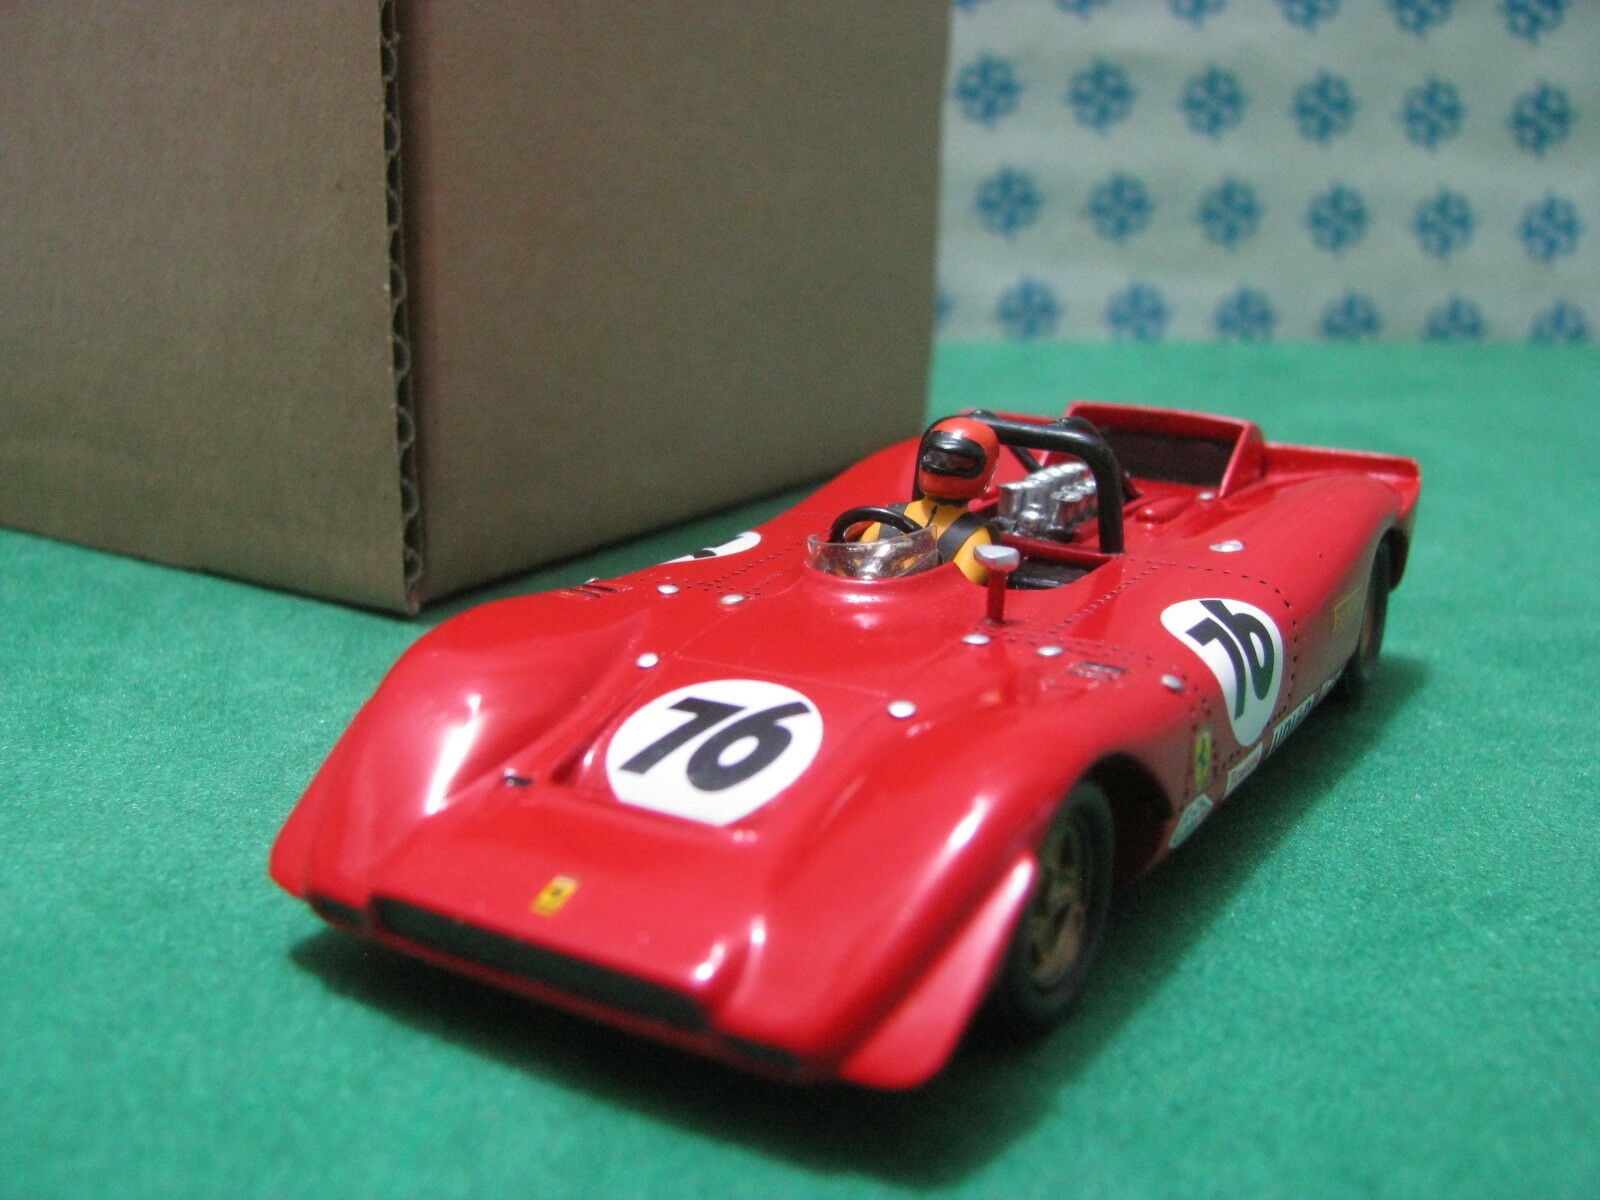 Vintage -  FERRARI  612  Can-Am  1969  -  1 43  FDS 1977  Kit  Montato n°56